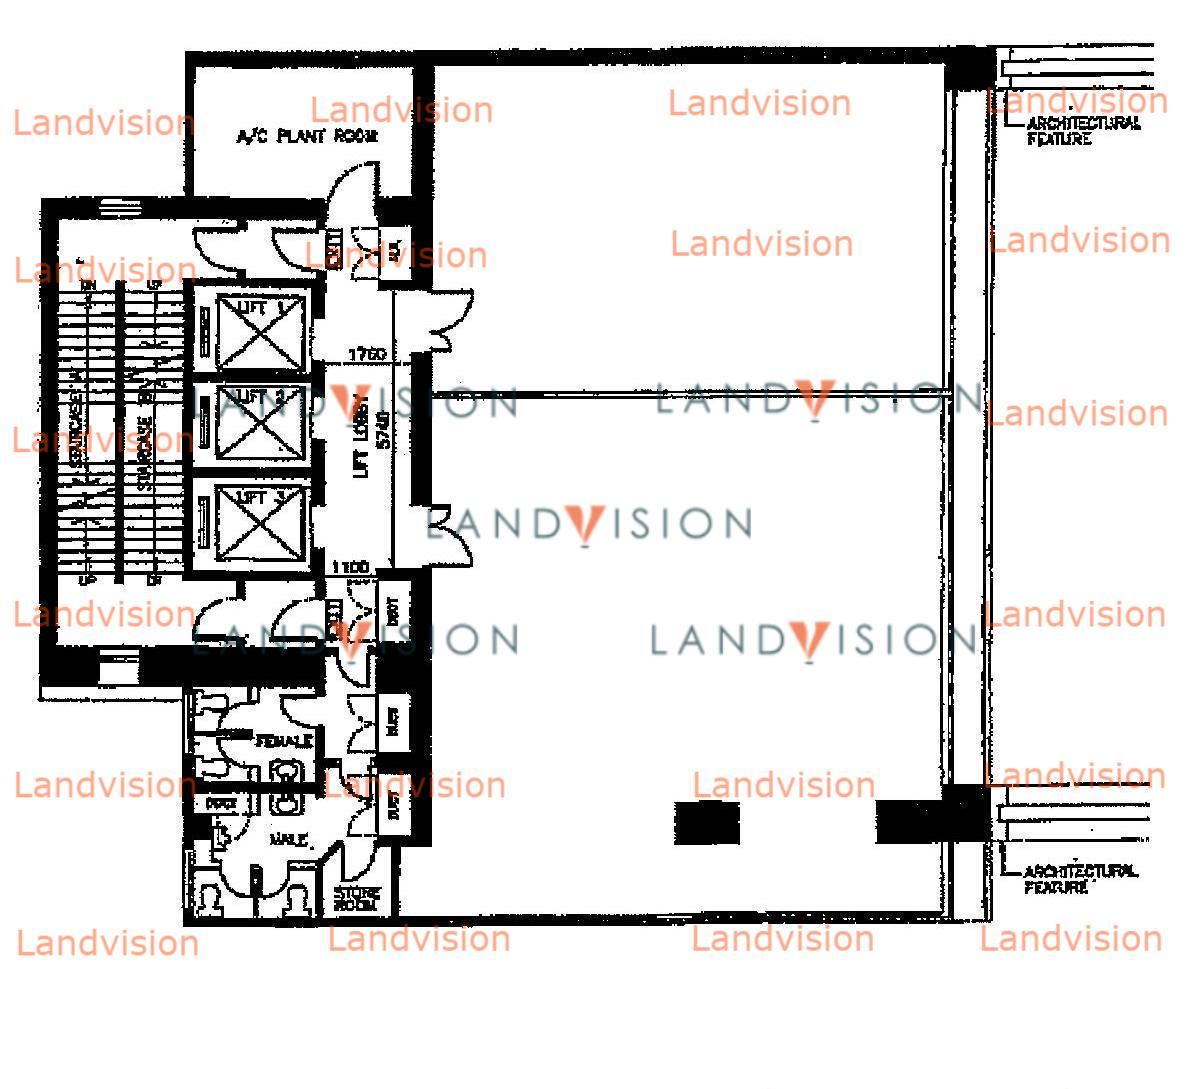 https://www.landvision.com.hk/wp-content/uploads/website/resize/floorplans/000231.JPG